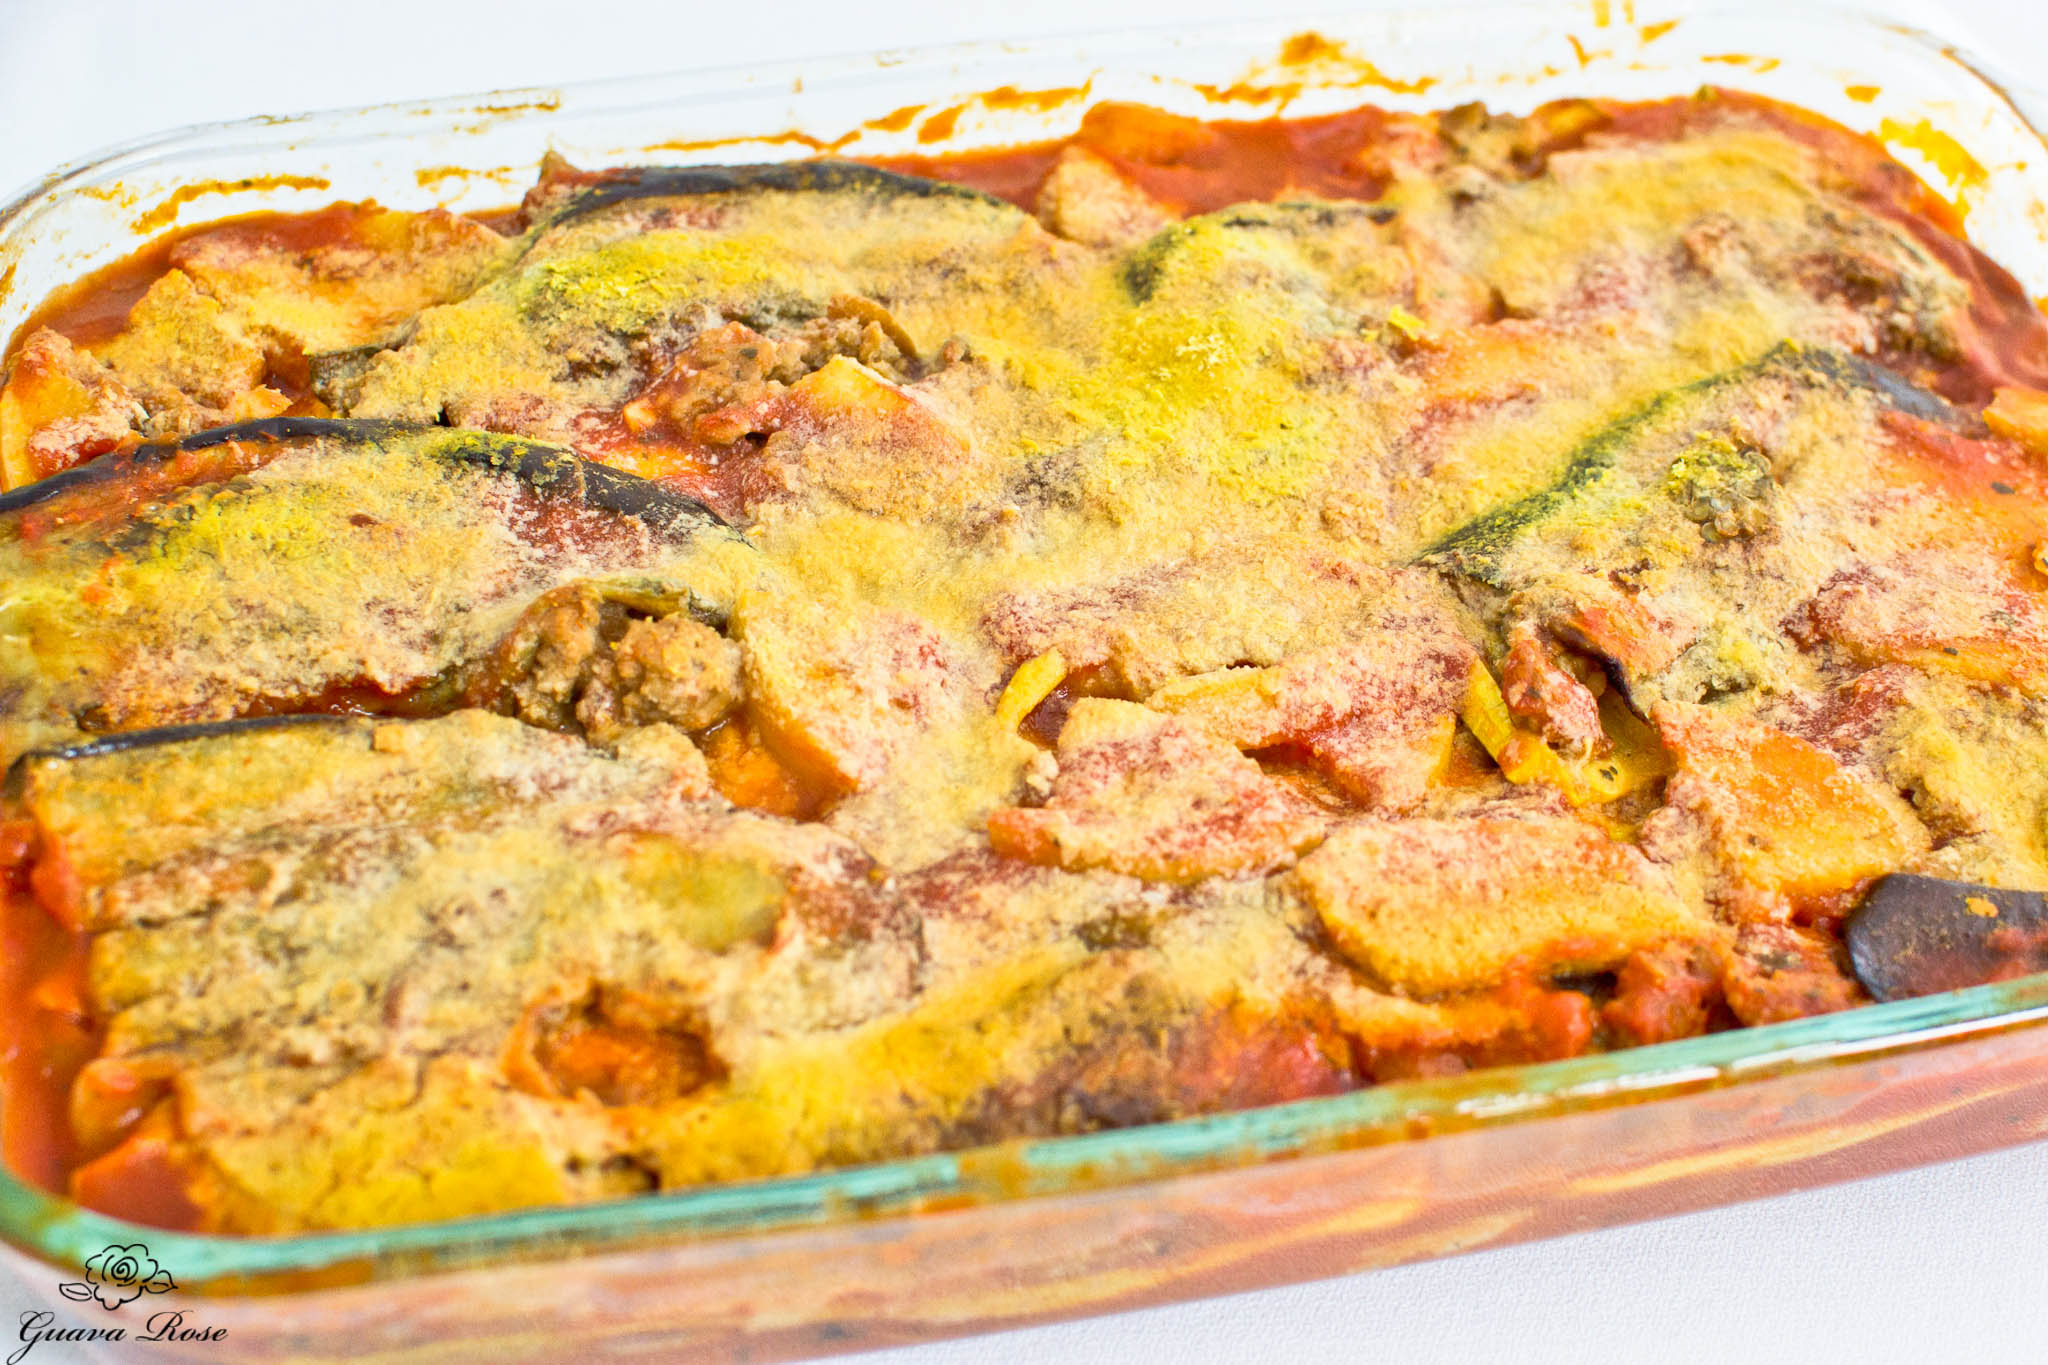 Pan of Roasted Vegetable Lasagna